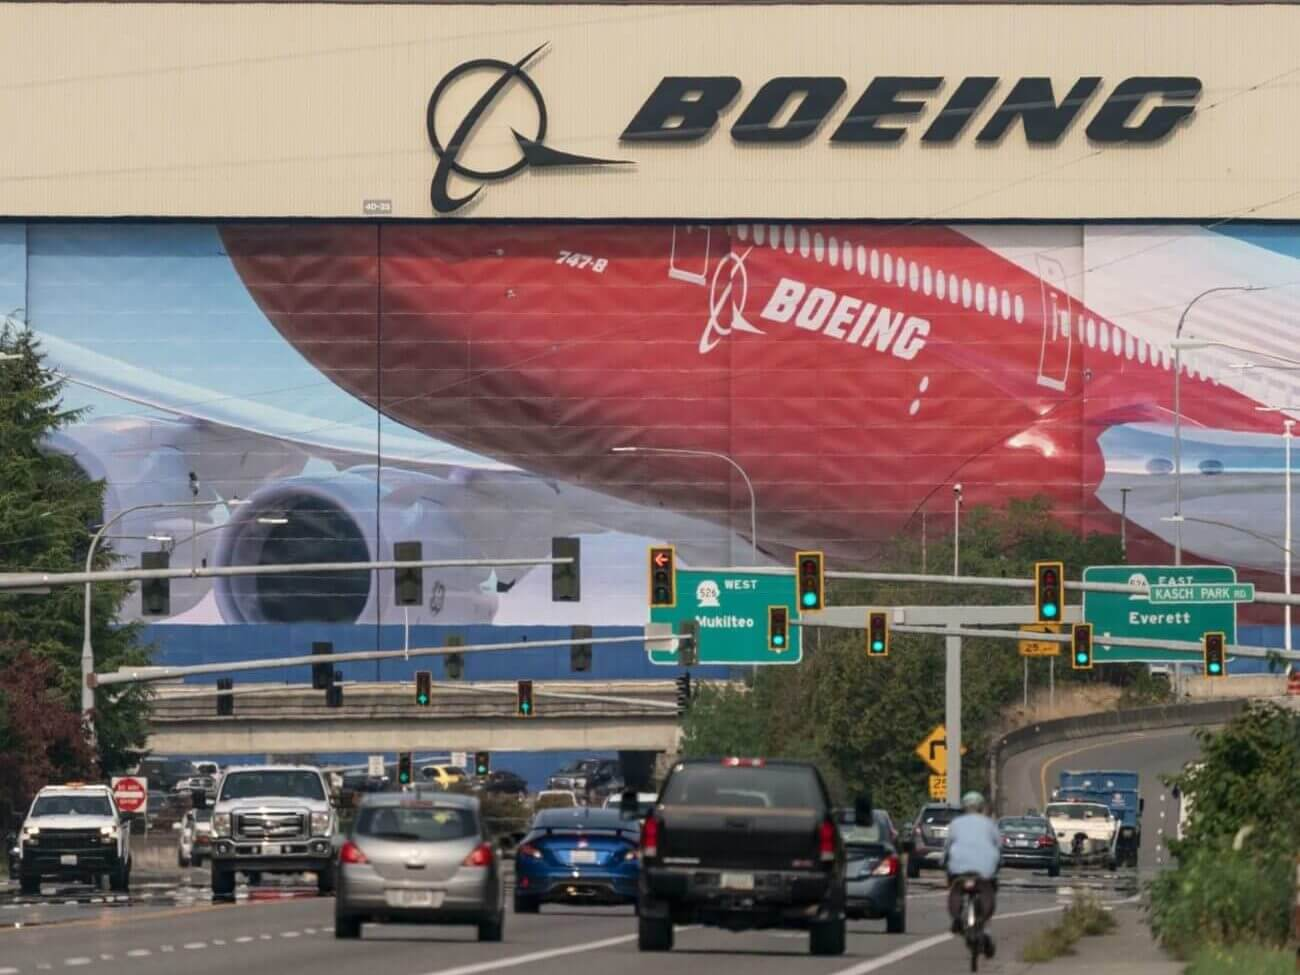 Boeing Is the Most modern Company to Shatter out a Hostile Replace Ambiance